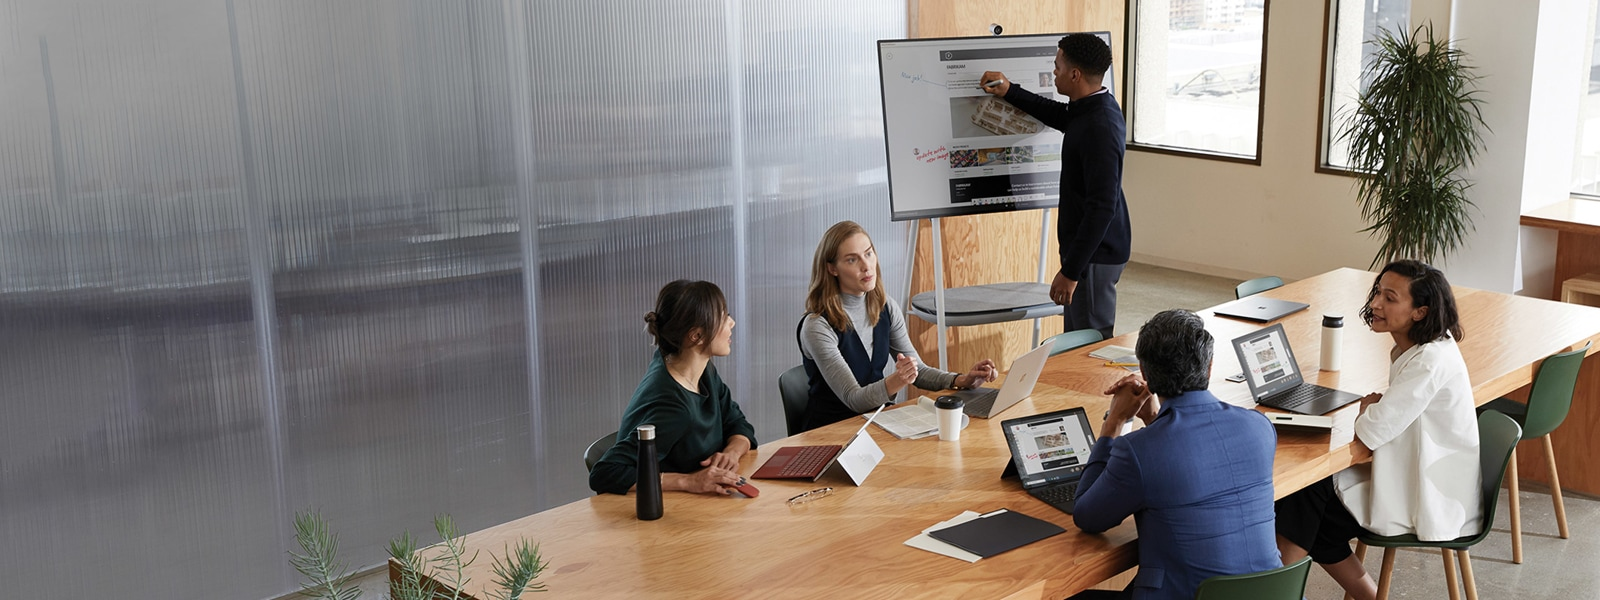 Co-workers collaborating with Surface laptops in a modern conference room.